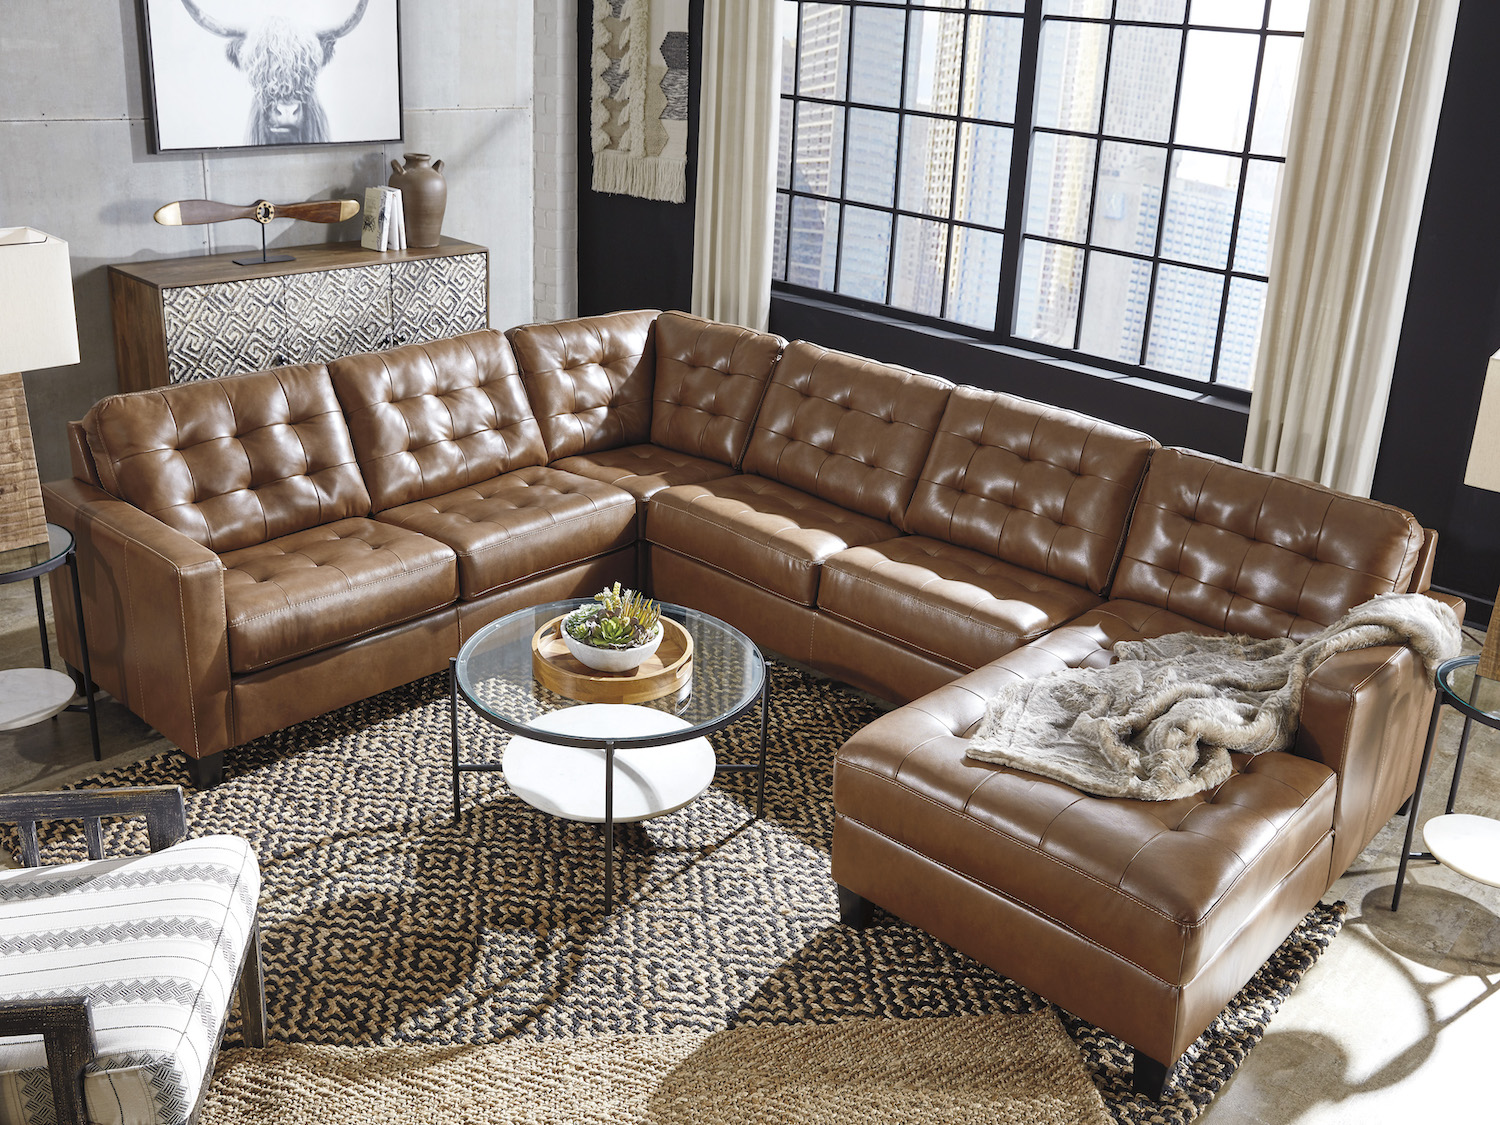 Baskove Sectional Only, 11102, Sectionals by Midha Furniture to Brampton, Mississauga, Etobicoke, Toronto, Scraborough, Caledon, Oakville, Markham, Ajax, Pickering, Oshawa, Richmondhill, Kitchener, Hamilton, Cambridge, Waterloo and GTA area